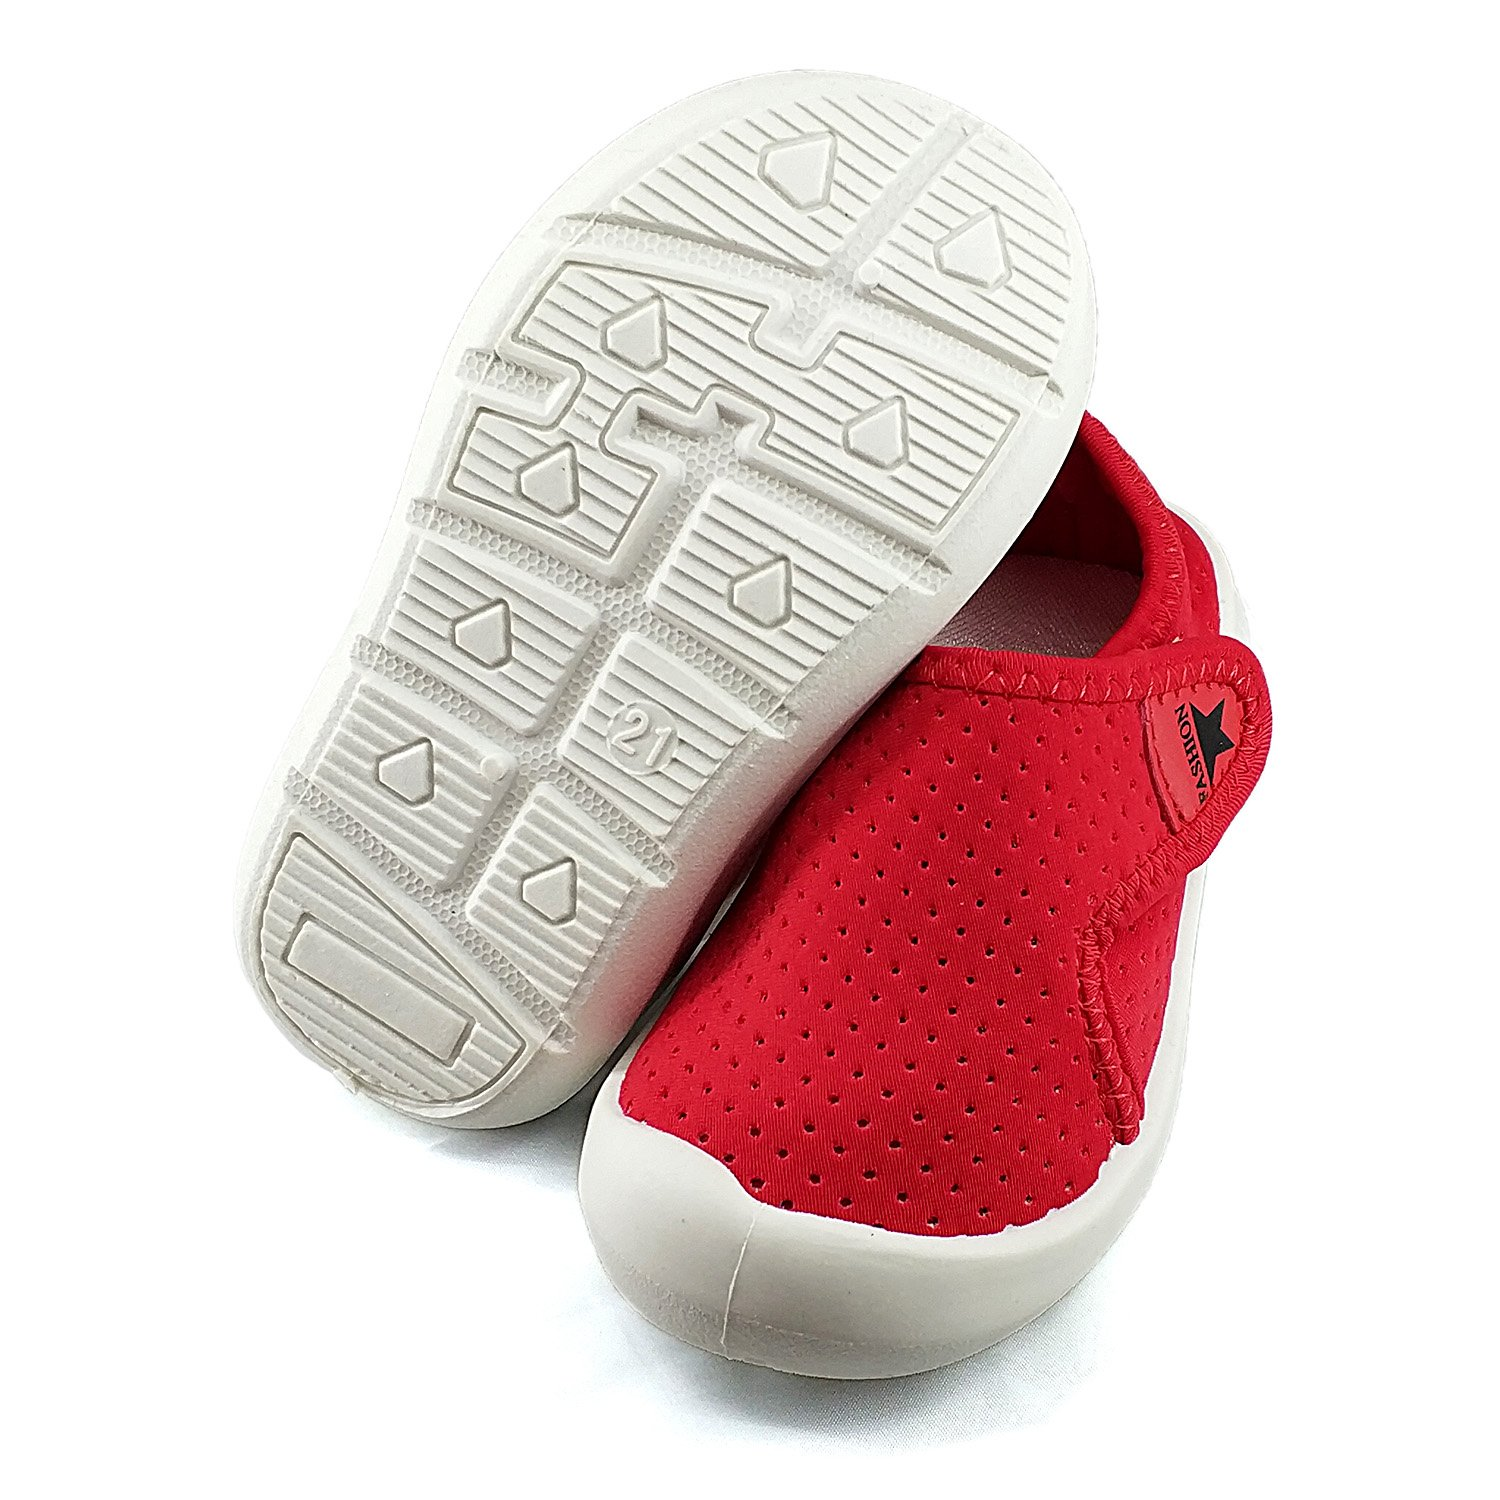 Breathable Mesh Lightweight Toddler Shoes for Walking Running Beach Pool Z-T FUTURE Kids Baby Boy Girl Sneakers